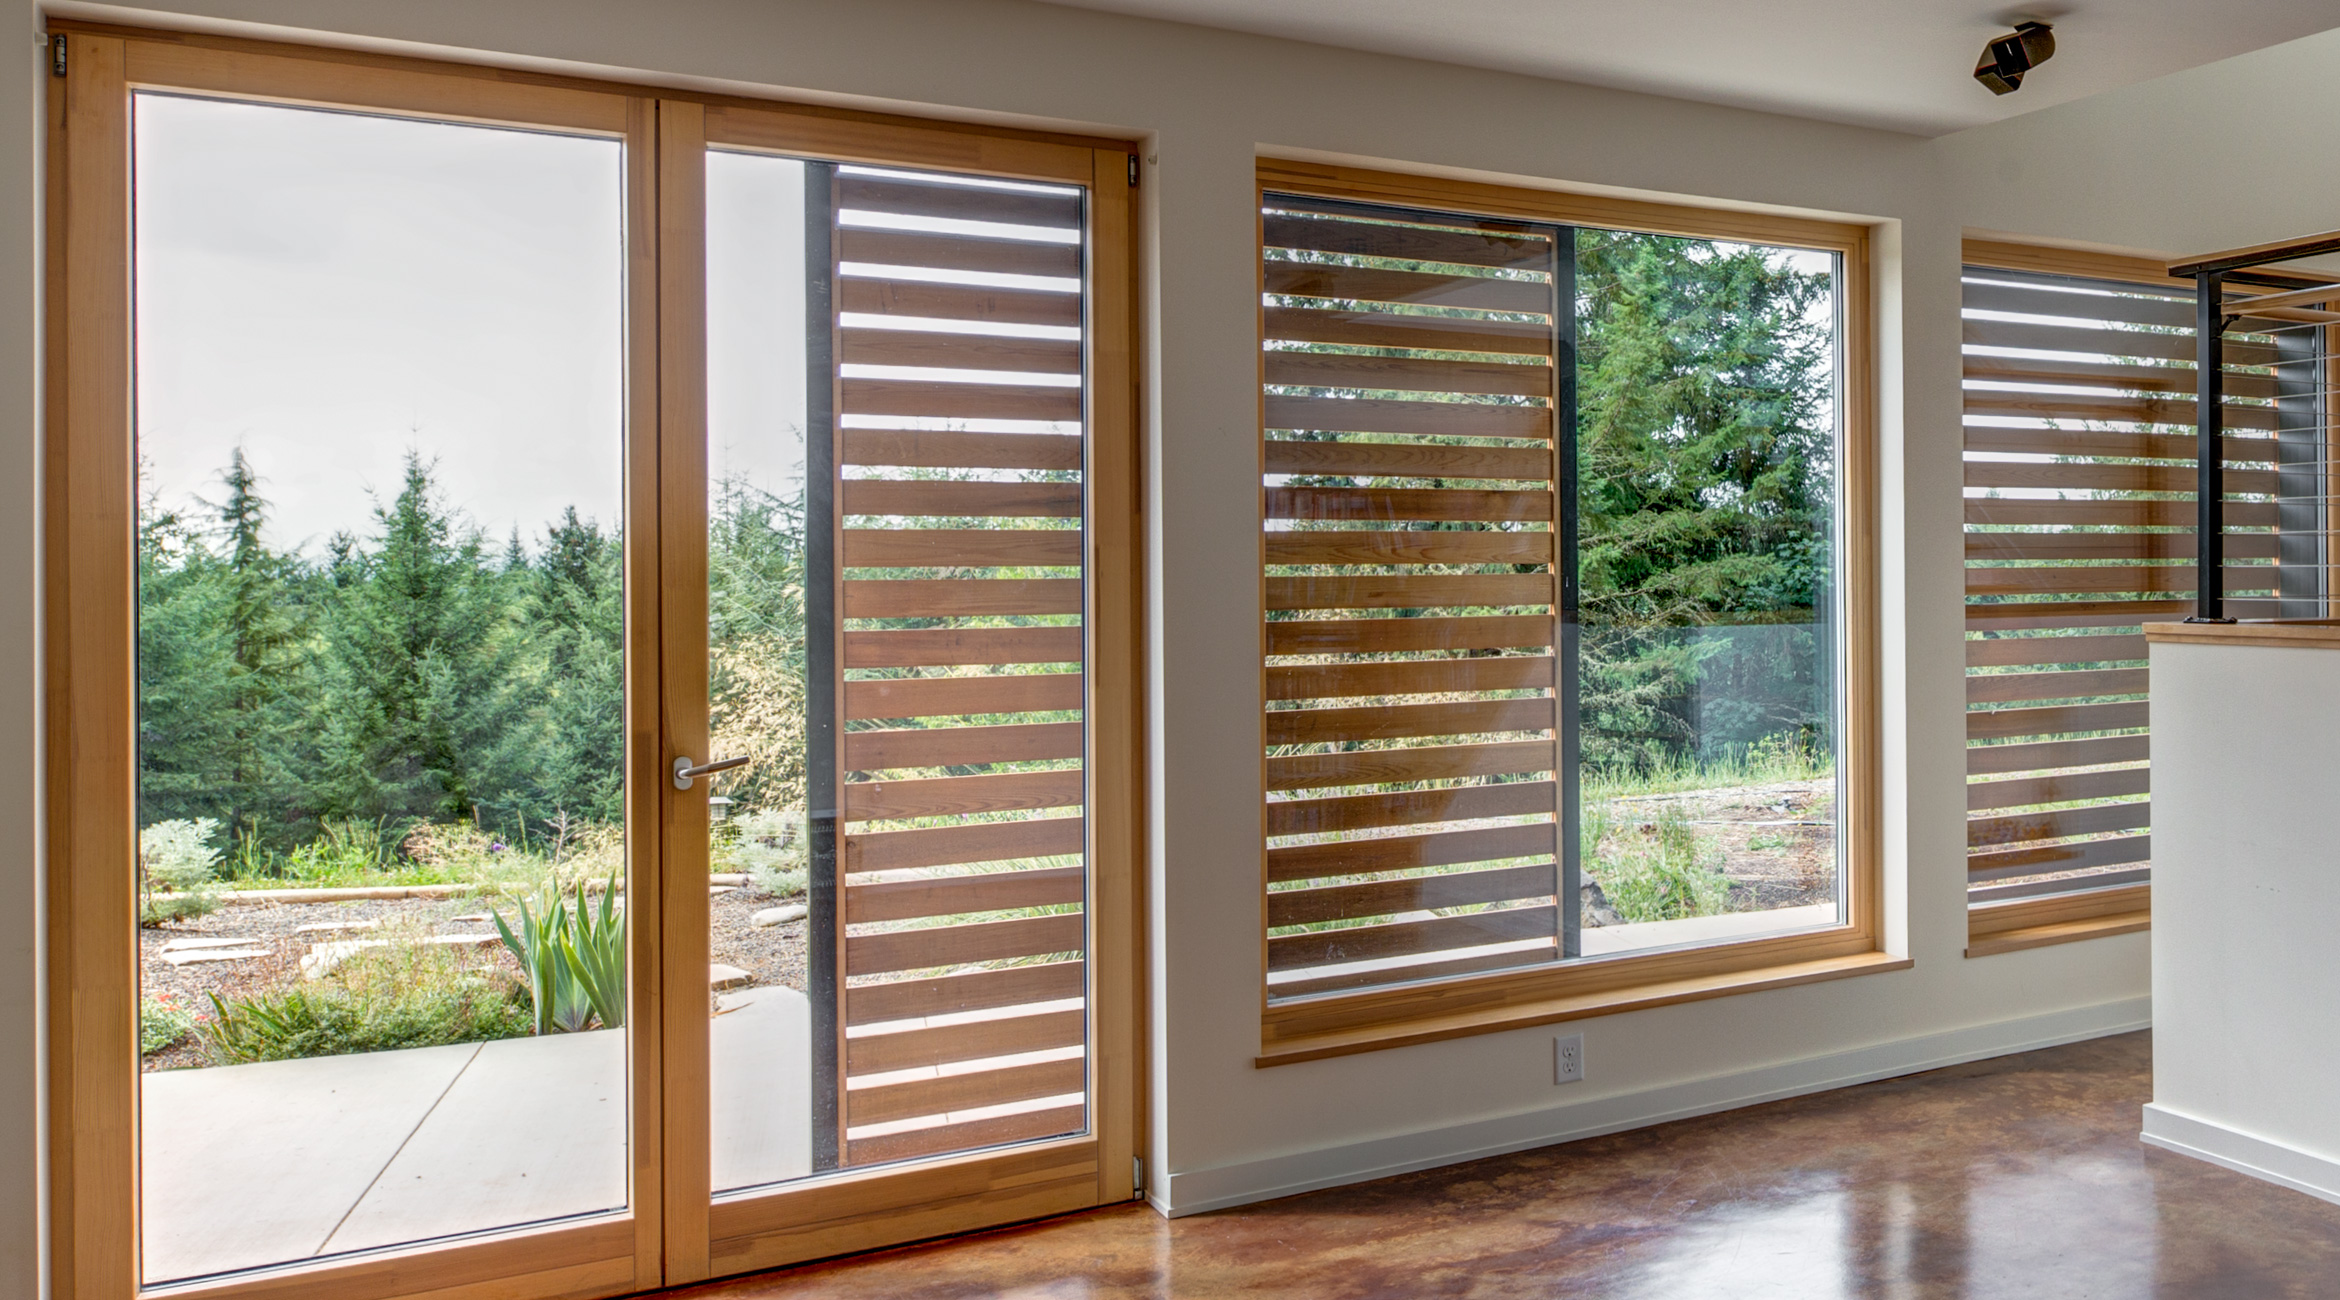 8 Types Of Windows For Your Home Window Design